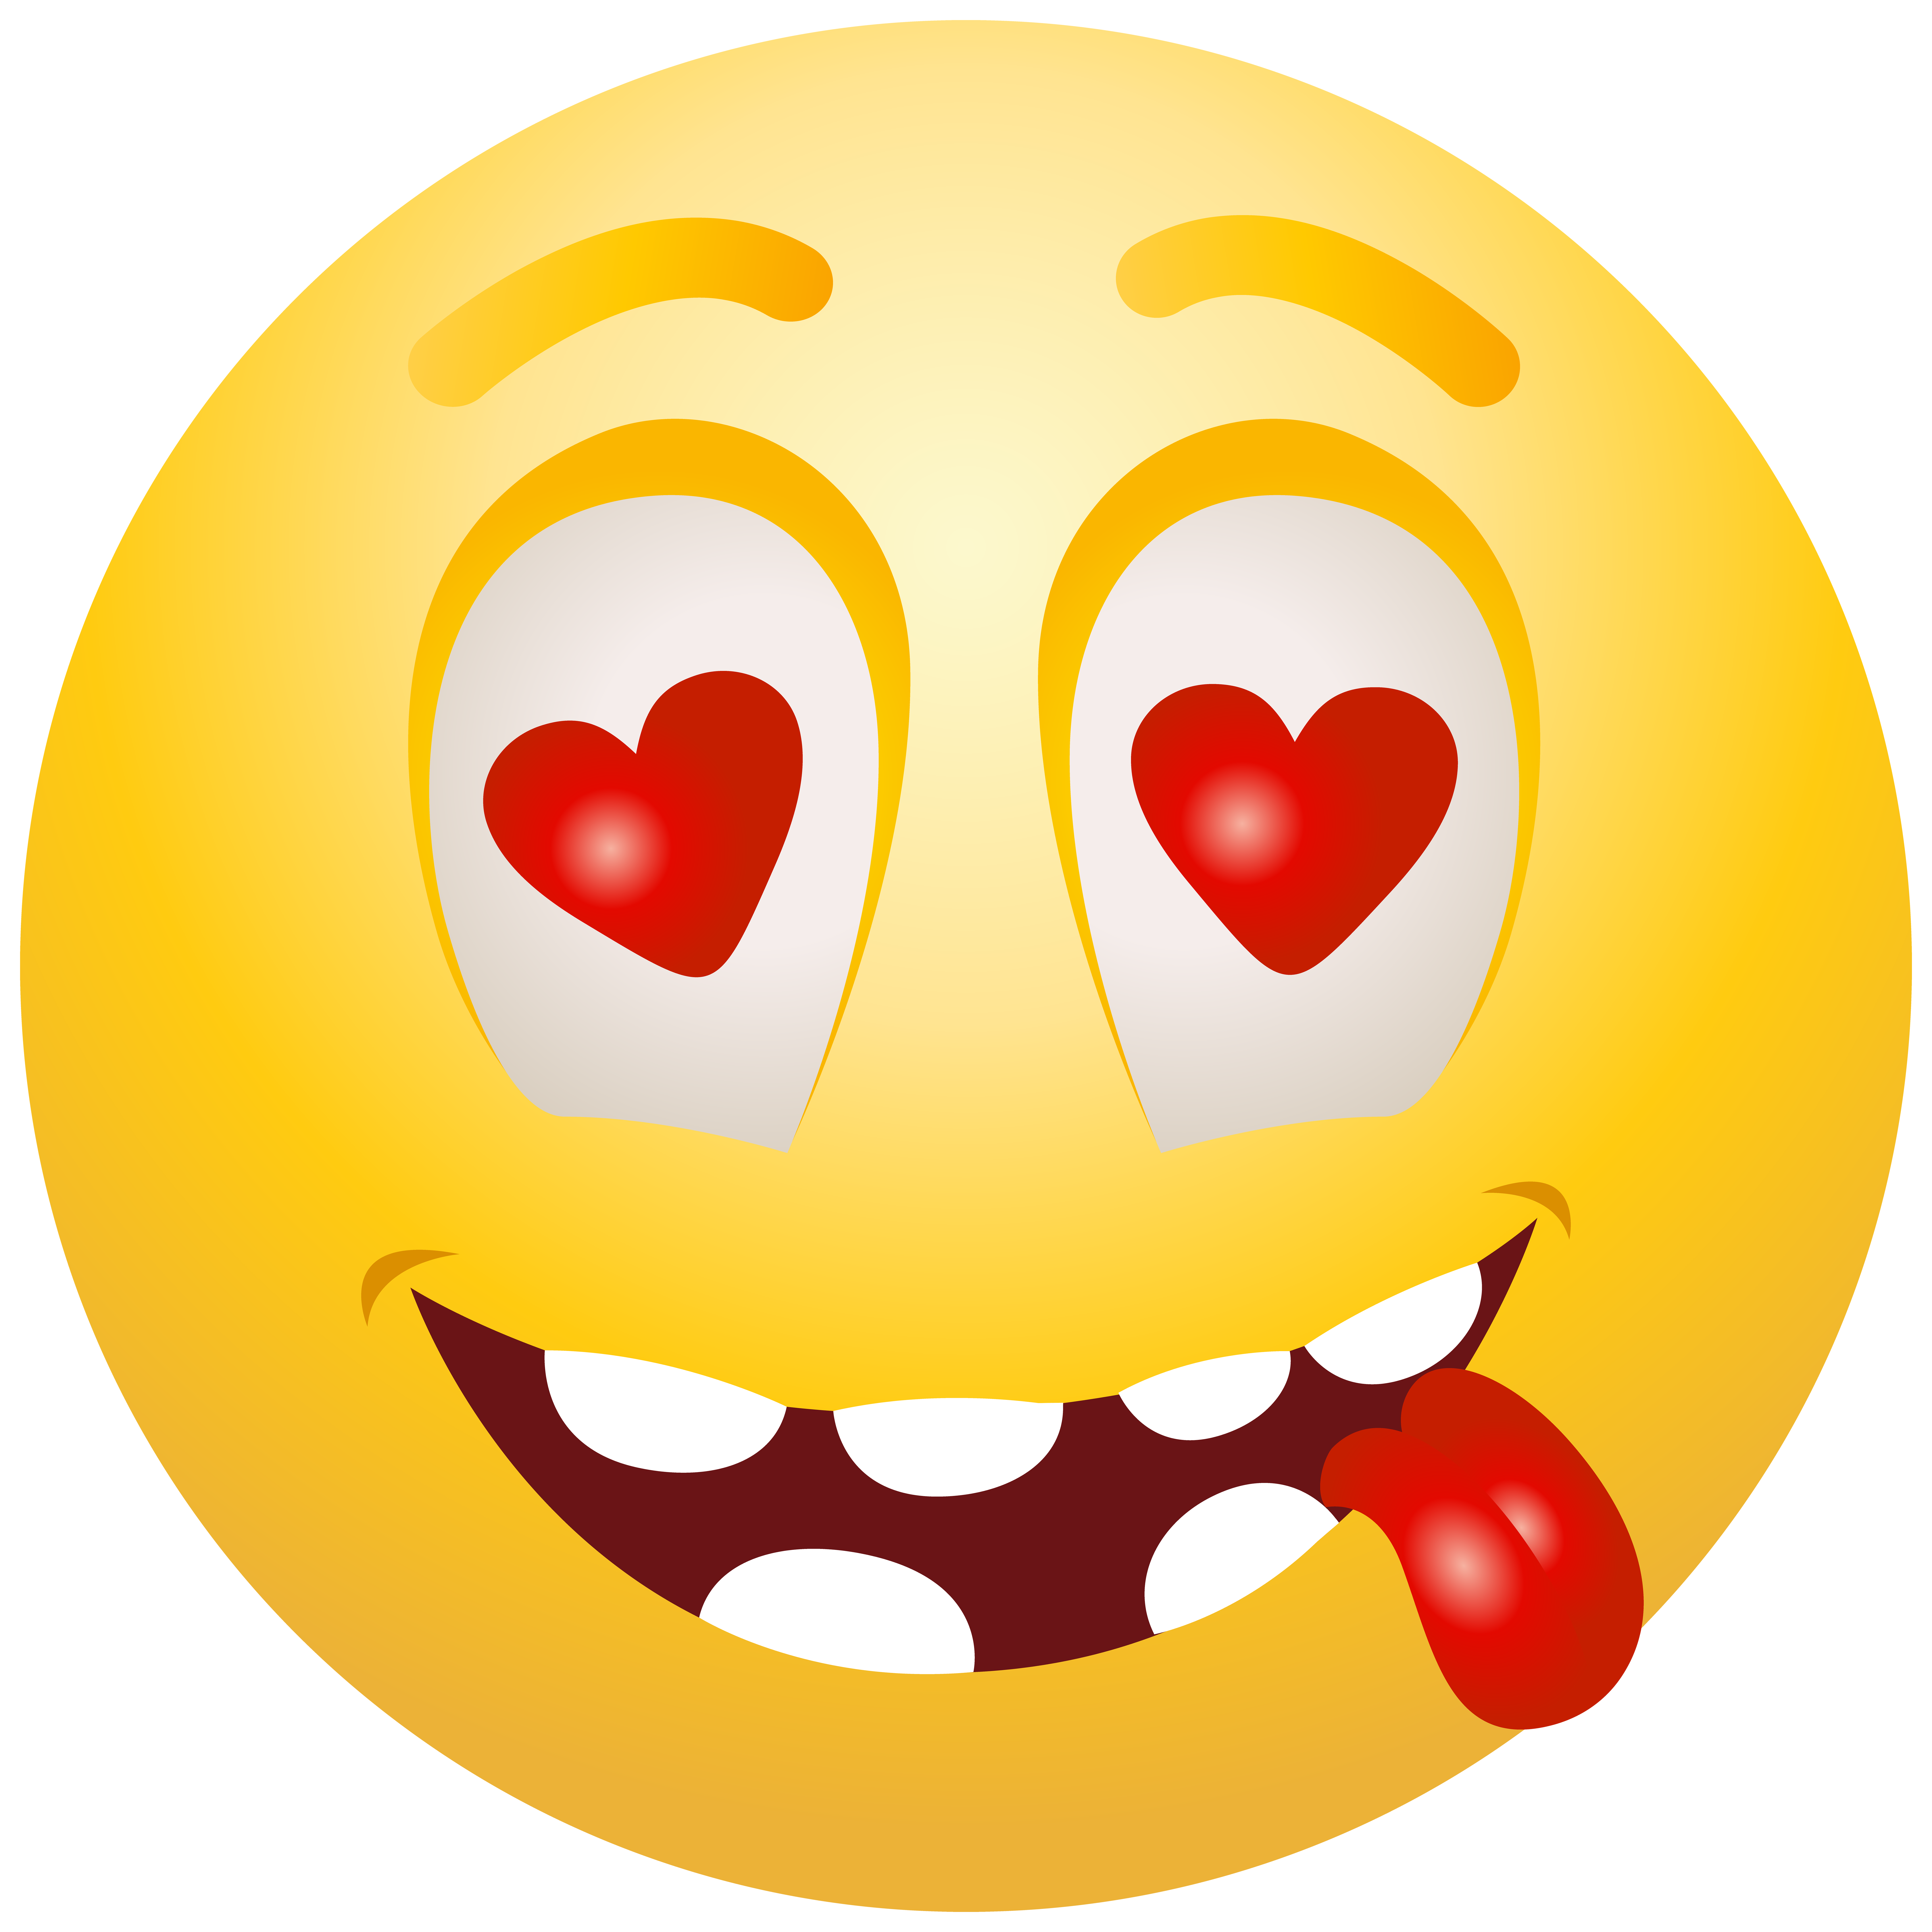 Planets clipart smiley. In love emoticon png